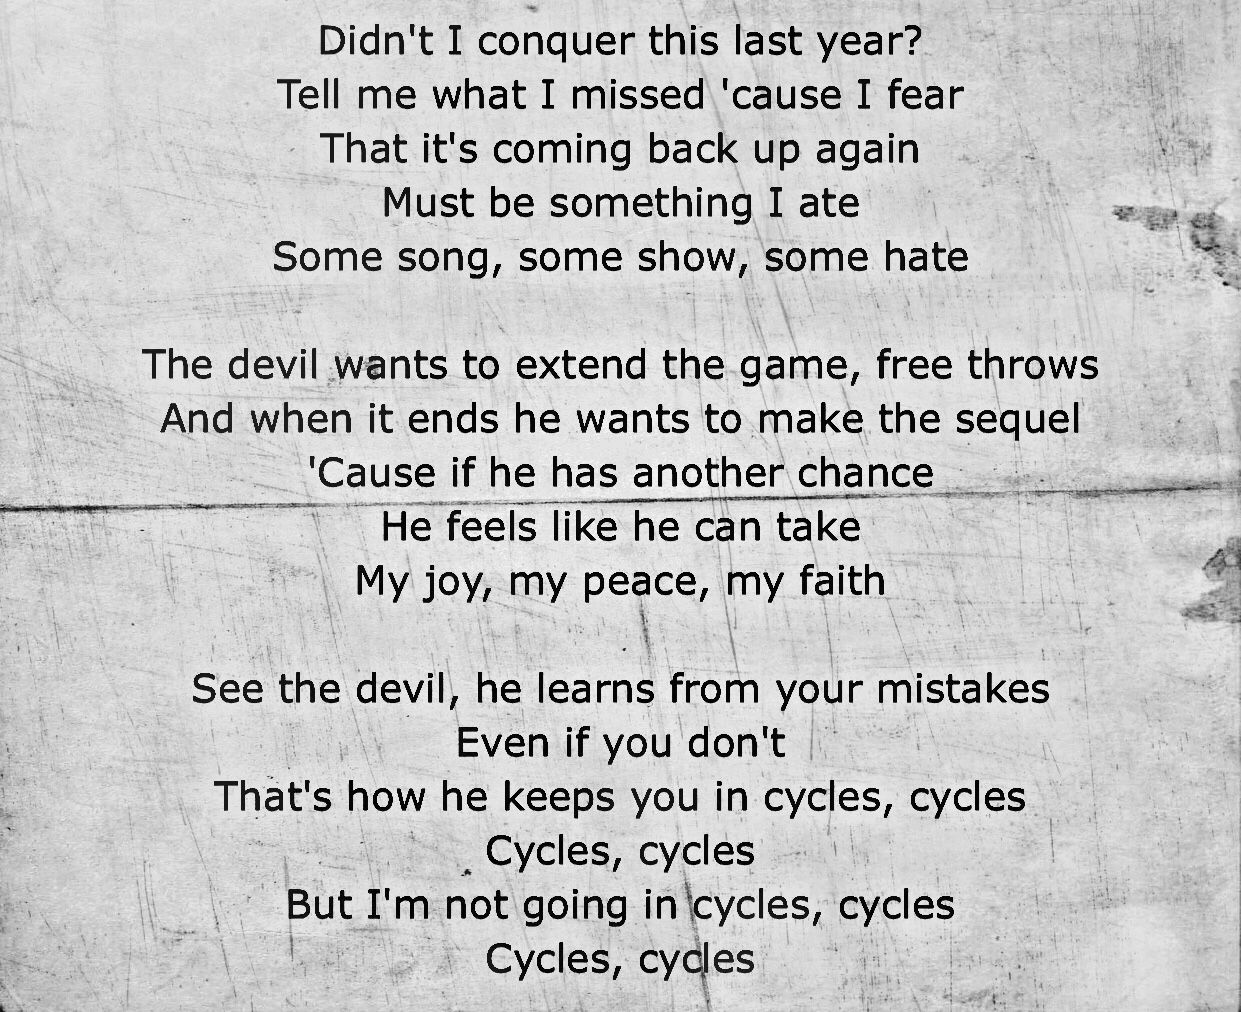 I Love This Song Cycles By Jonathan Mcreynolds Ft Doe Break The